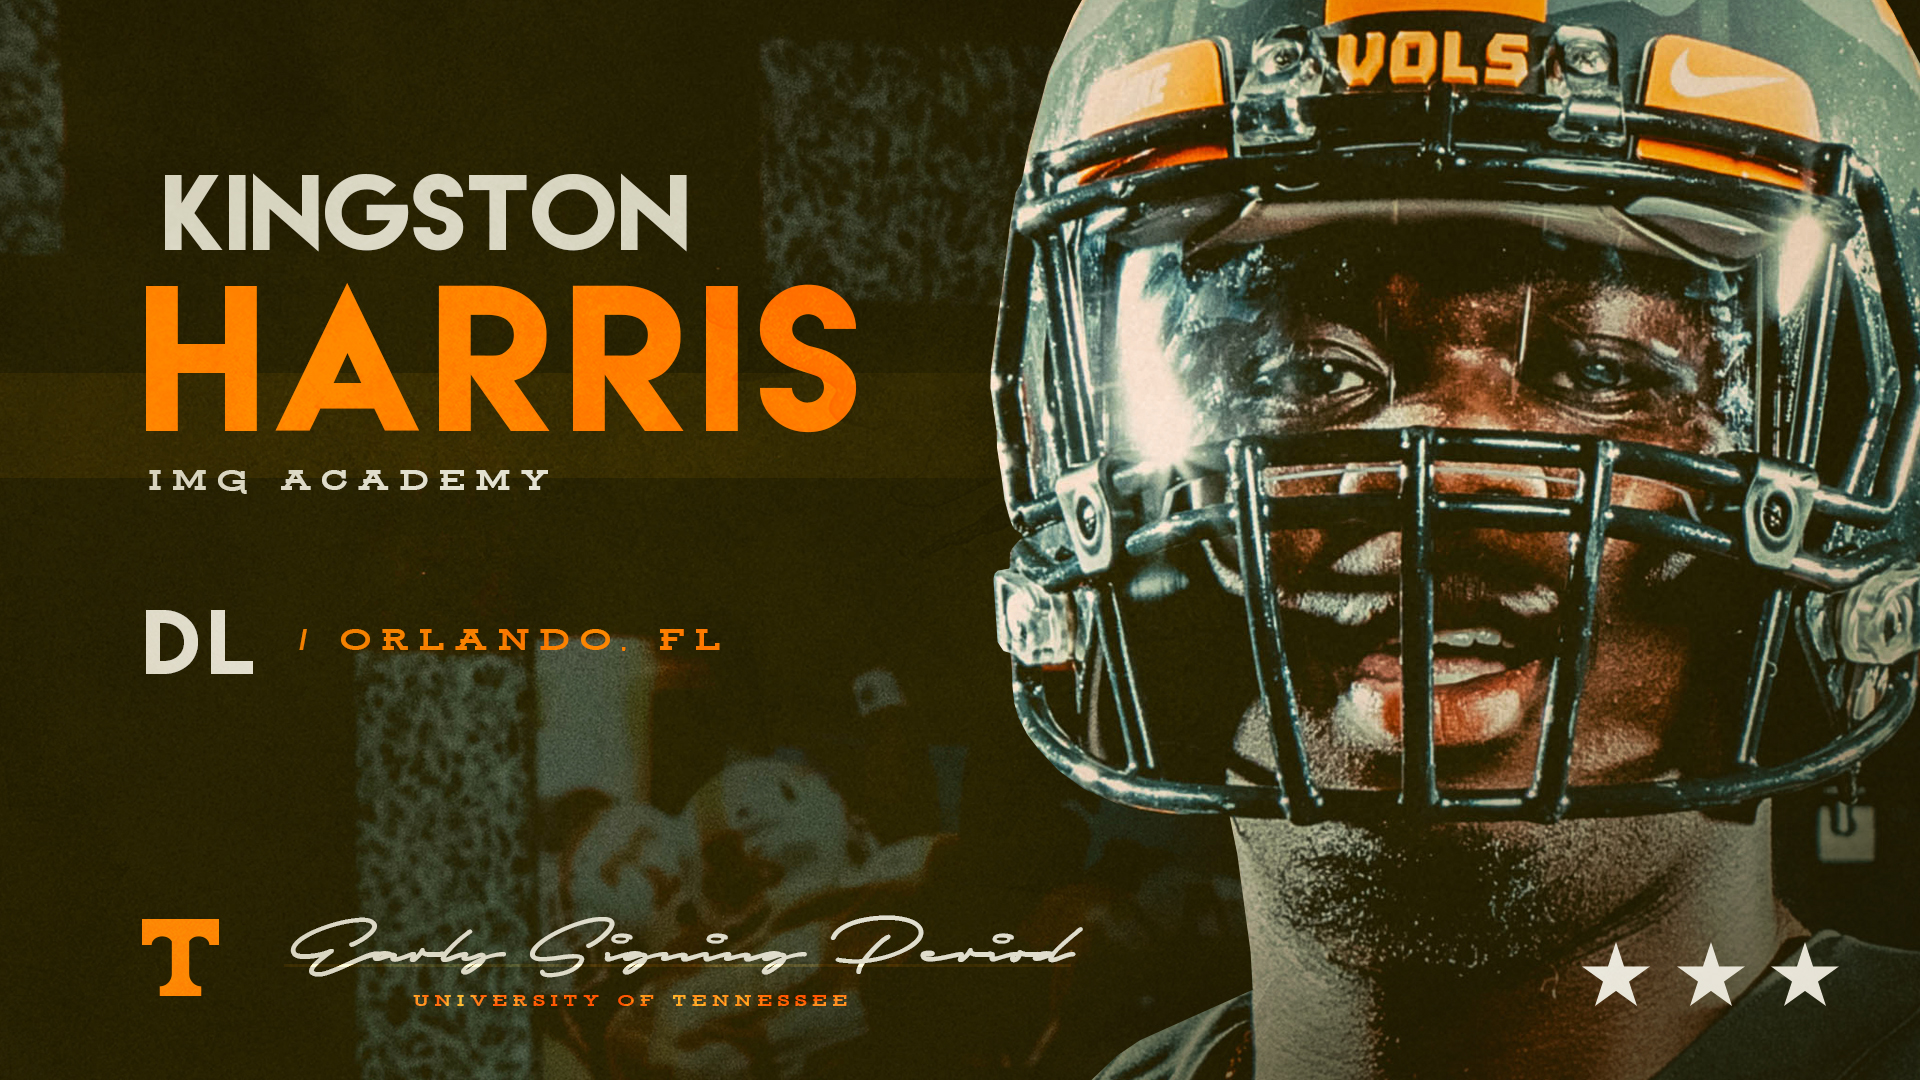 DL Kingston Harris is the 5th player to sign with Tennessee